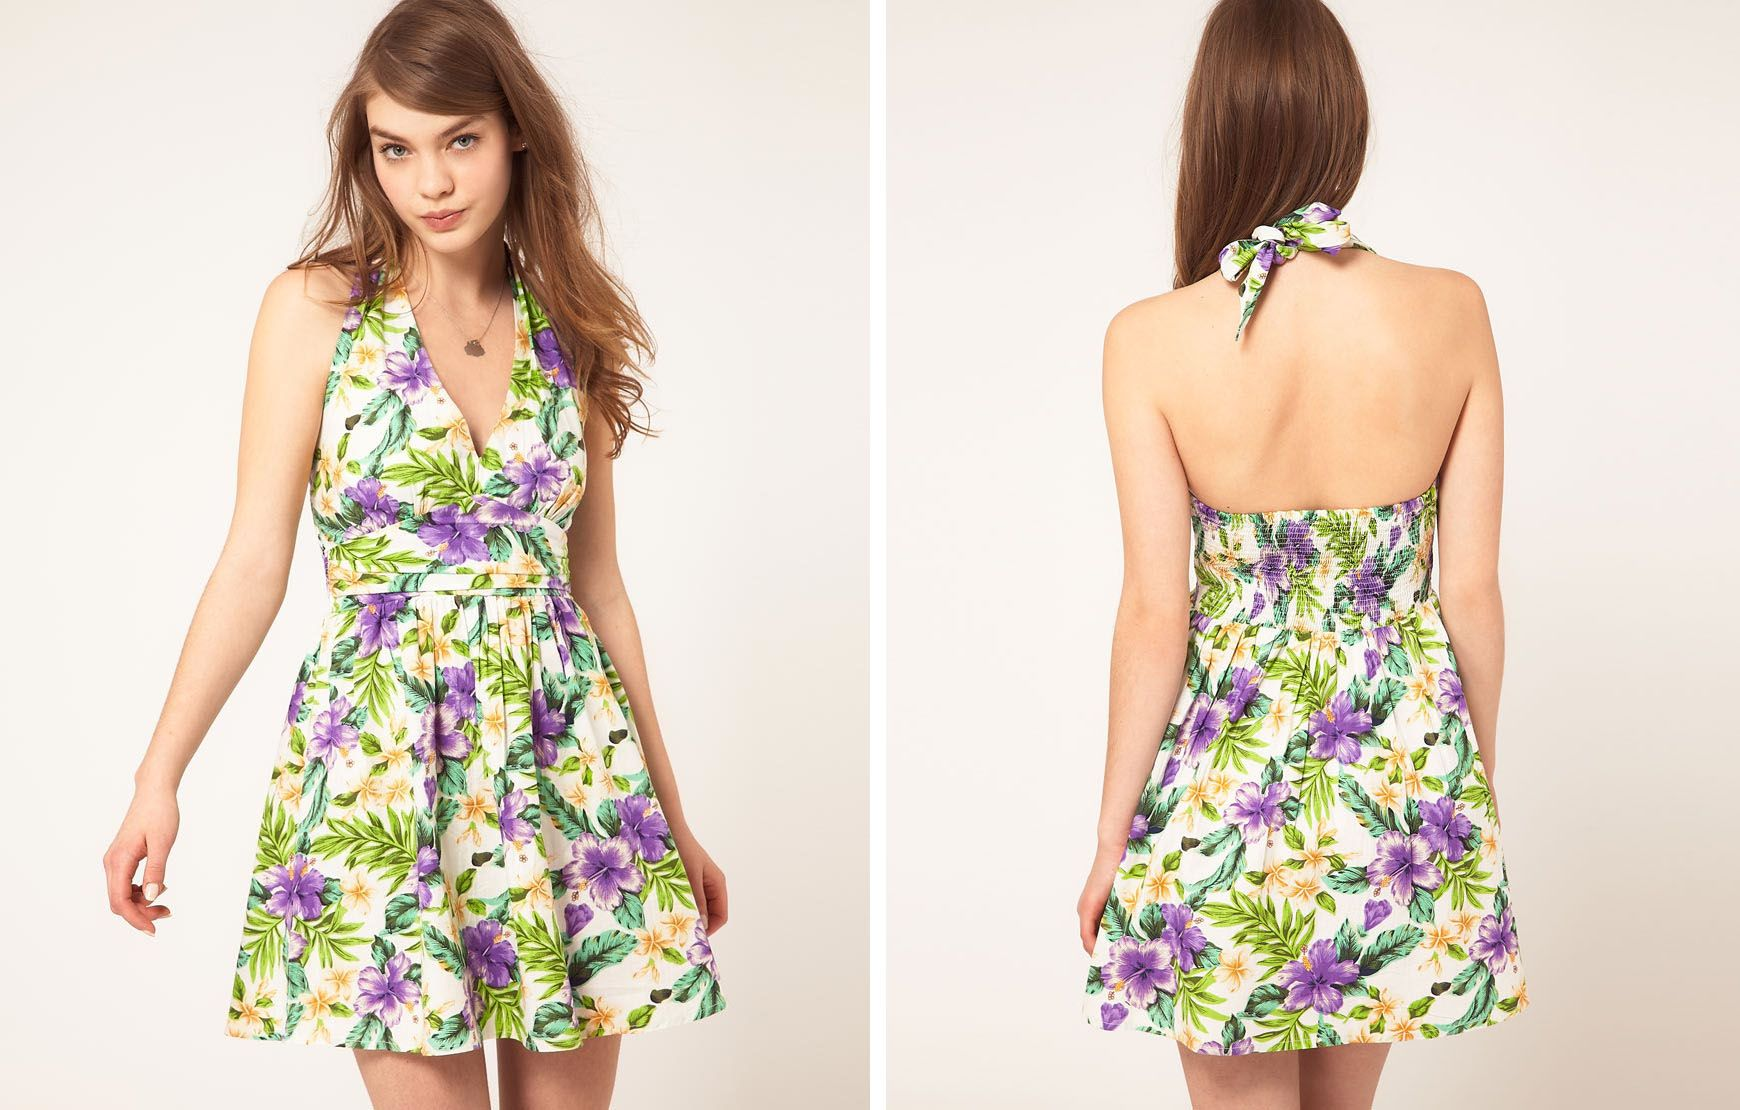 Collection Floral Dresses For Women Pictures - Reikian